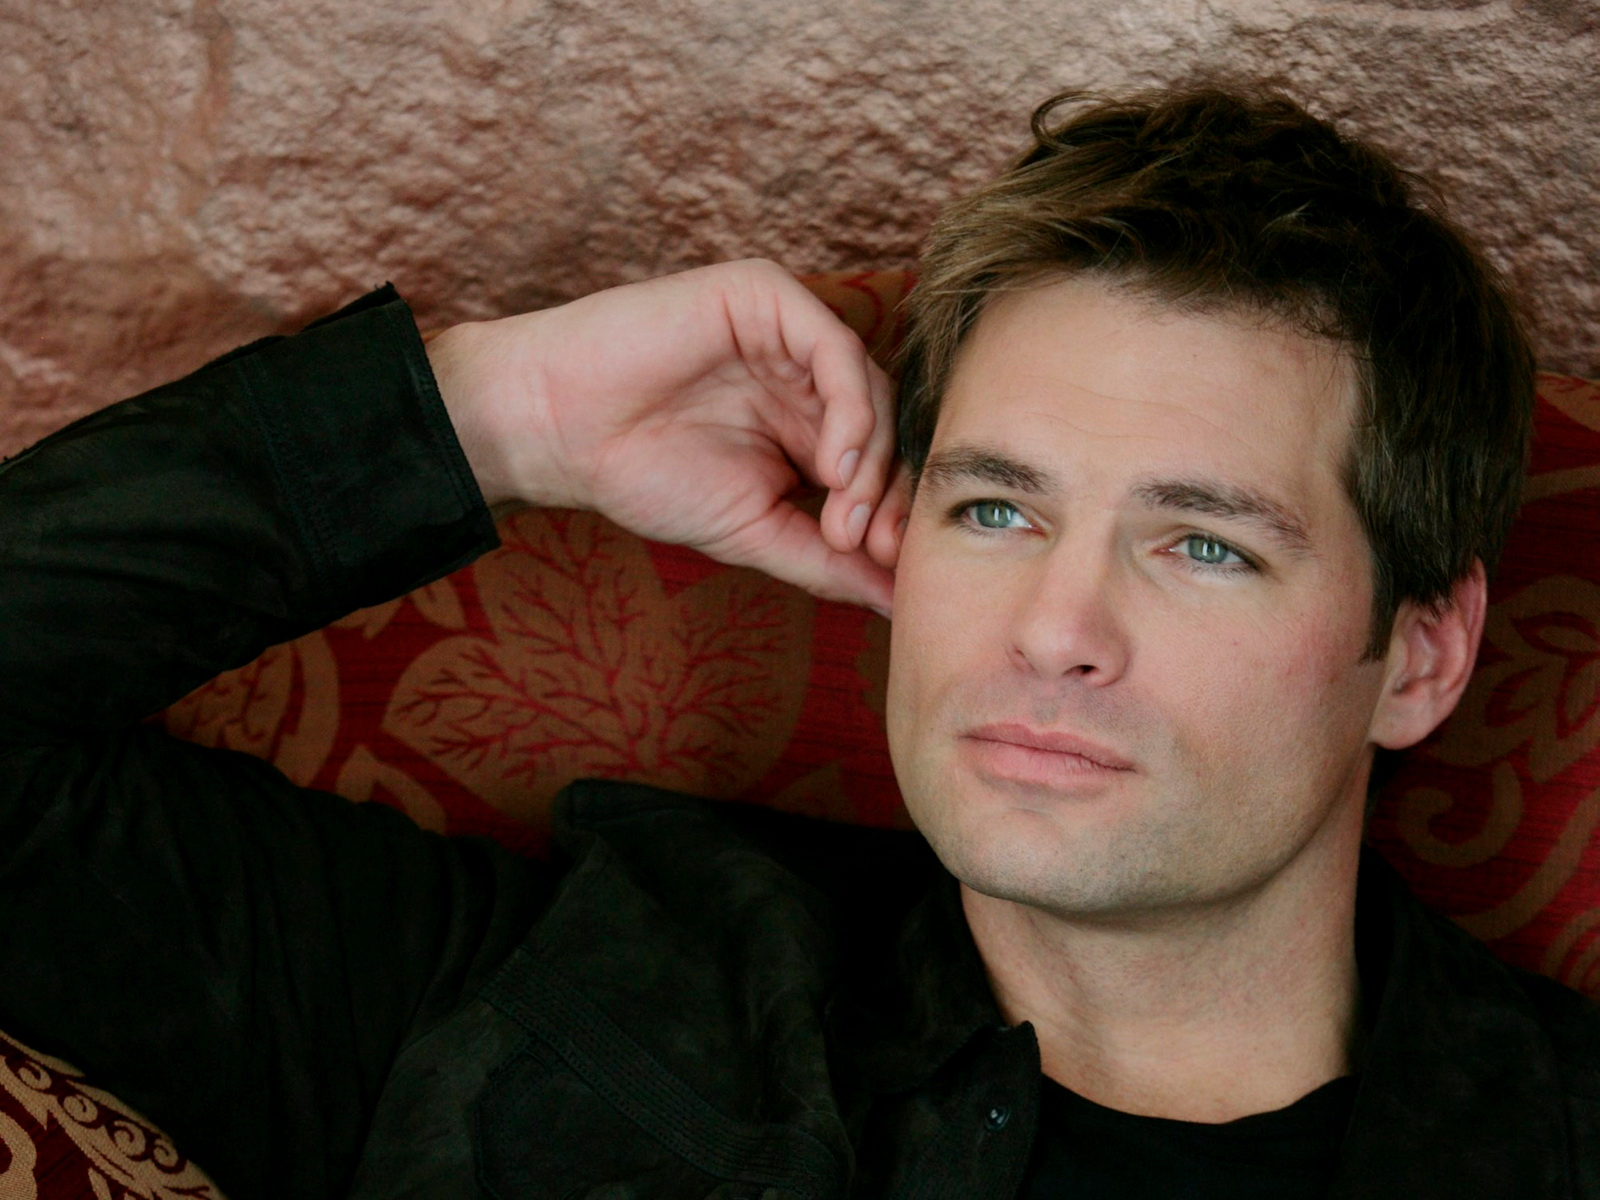 DANIEL COSGROVE Heads to DAYS OF OUR LIVES | The Buzz